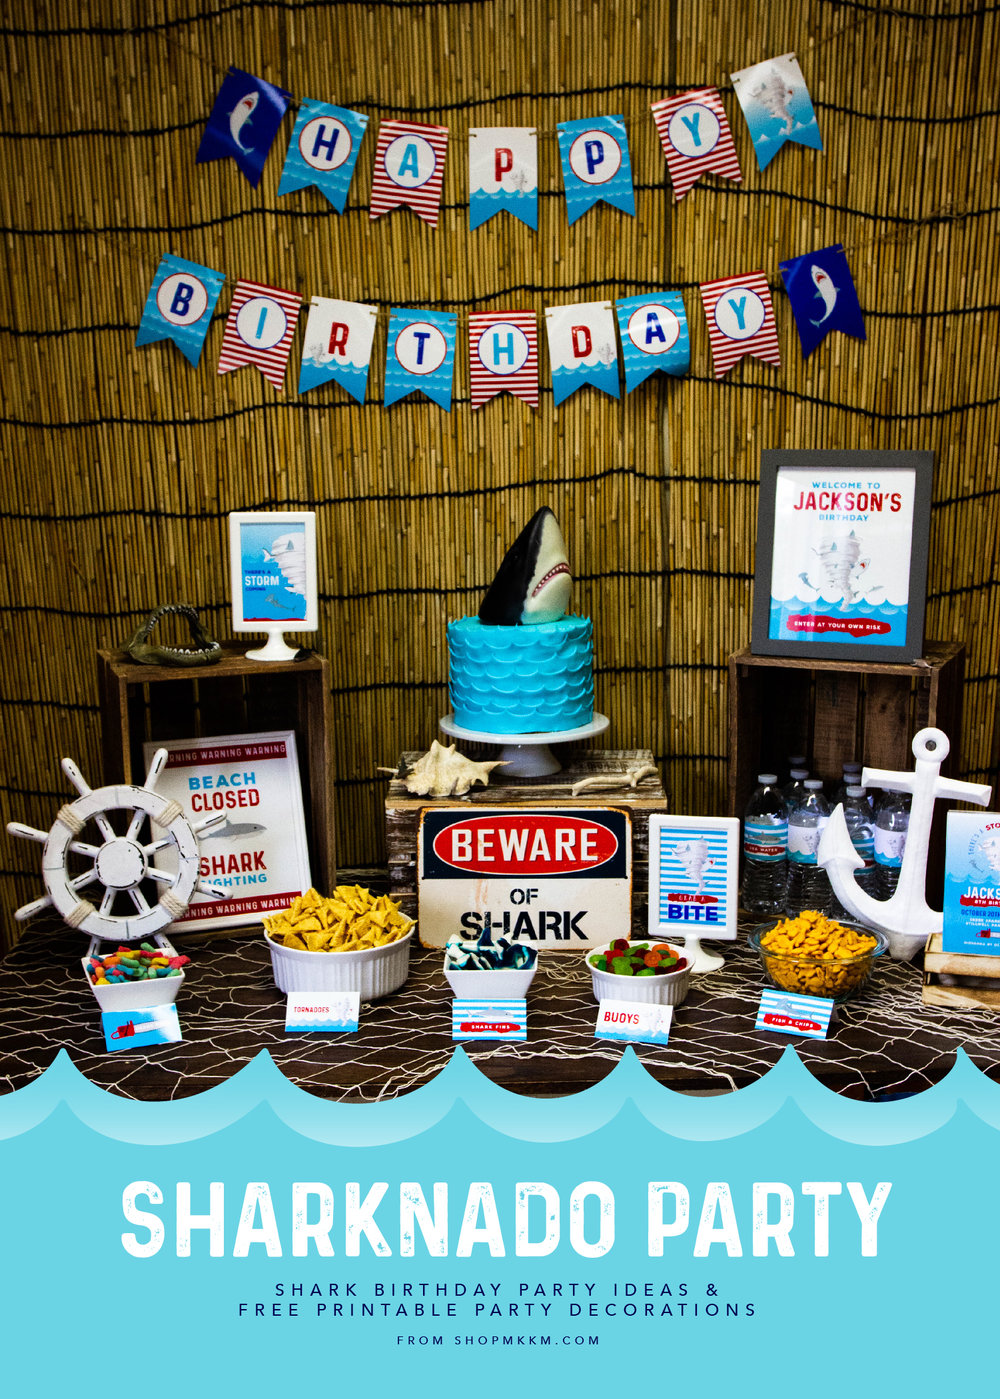 Sharknado Party Ideas & Free Printables ✦ Boy Birthday Ideas ✦ #freebiefridays // ✦ mkkmdesigns